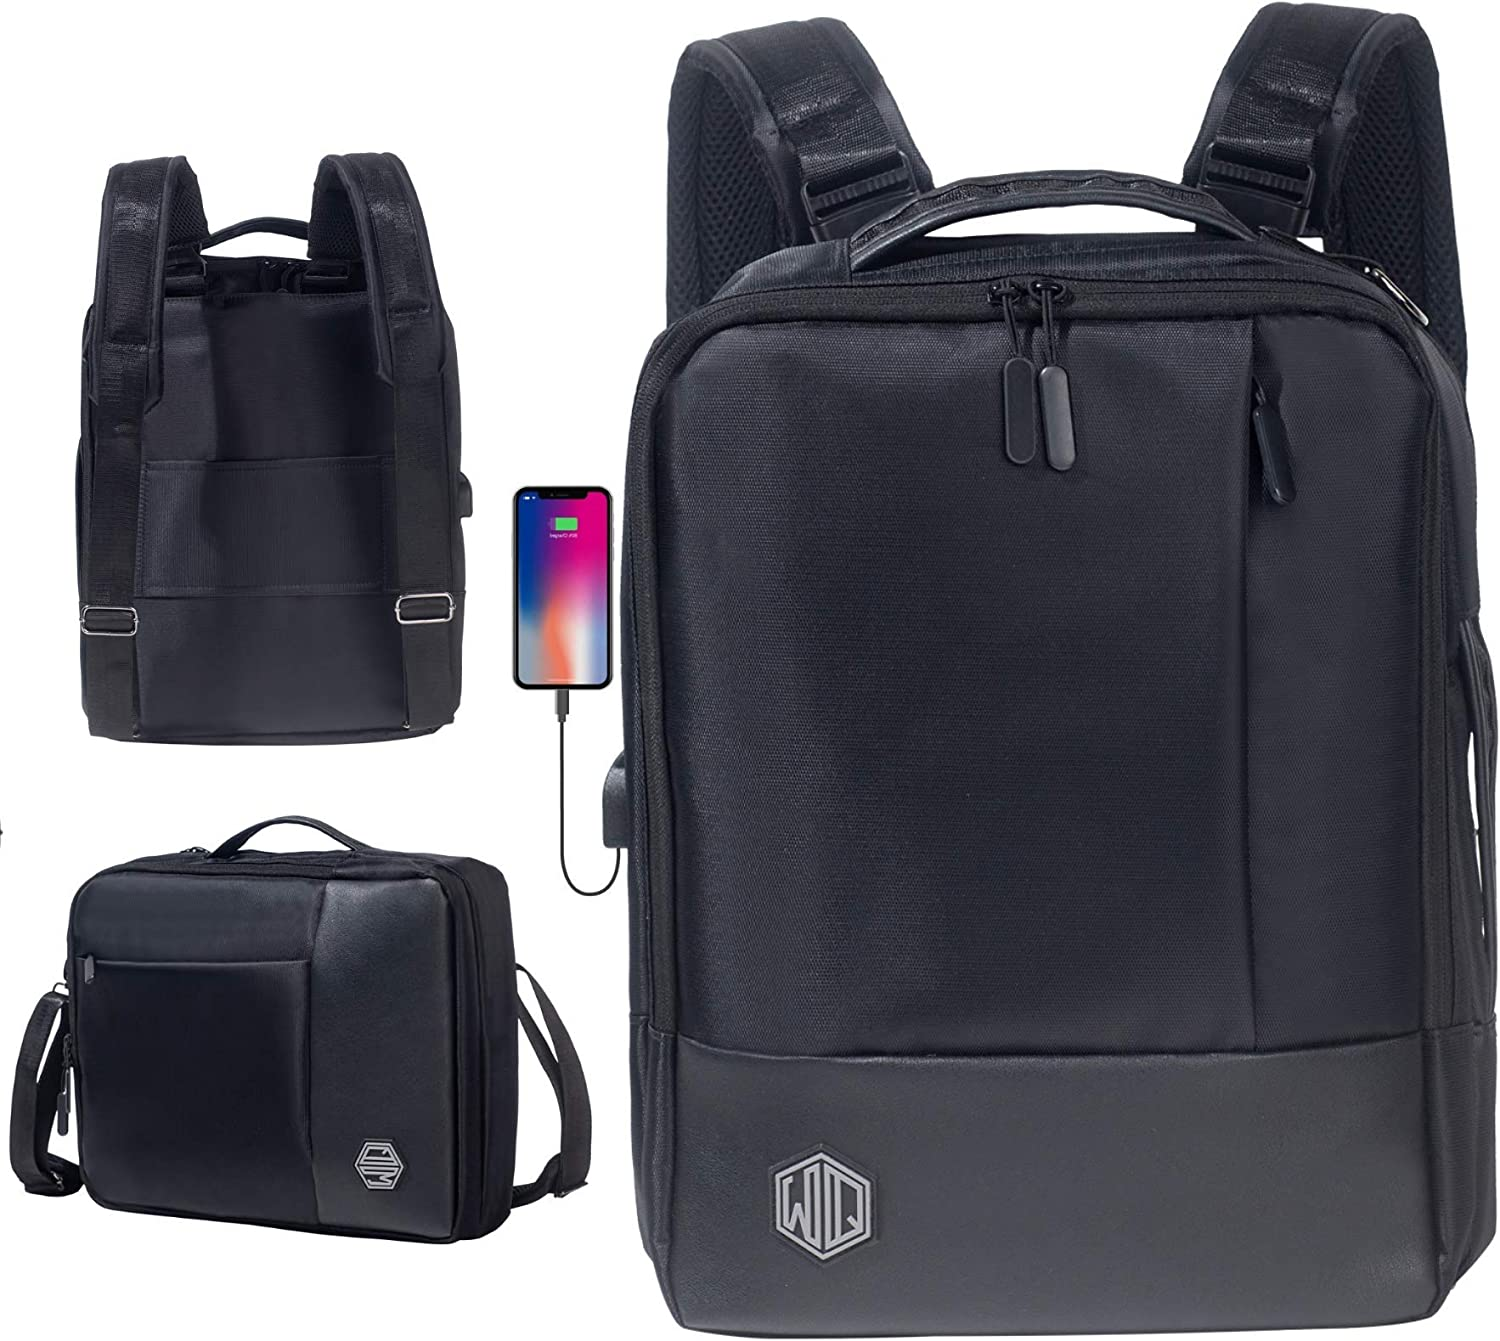 Laptop Backpack By Widely Quality - Convertible Backpack and Briefcase for Men - Waterproof Travel Bag with USB Port - Black Leather Slim Messenger For Him - Fits 15.6' Laptop